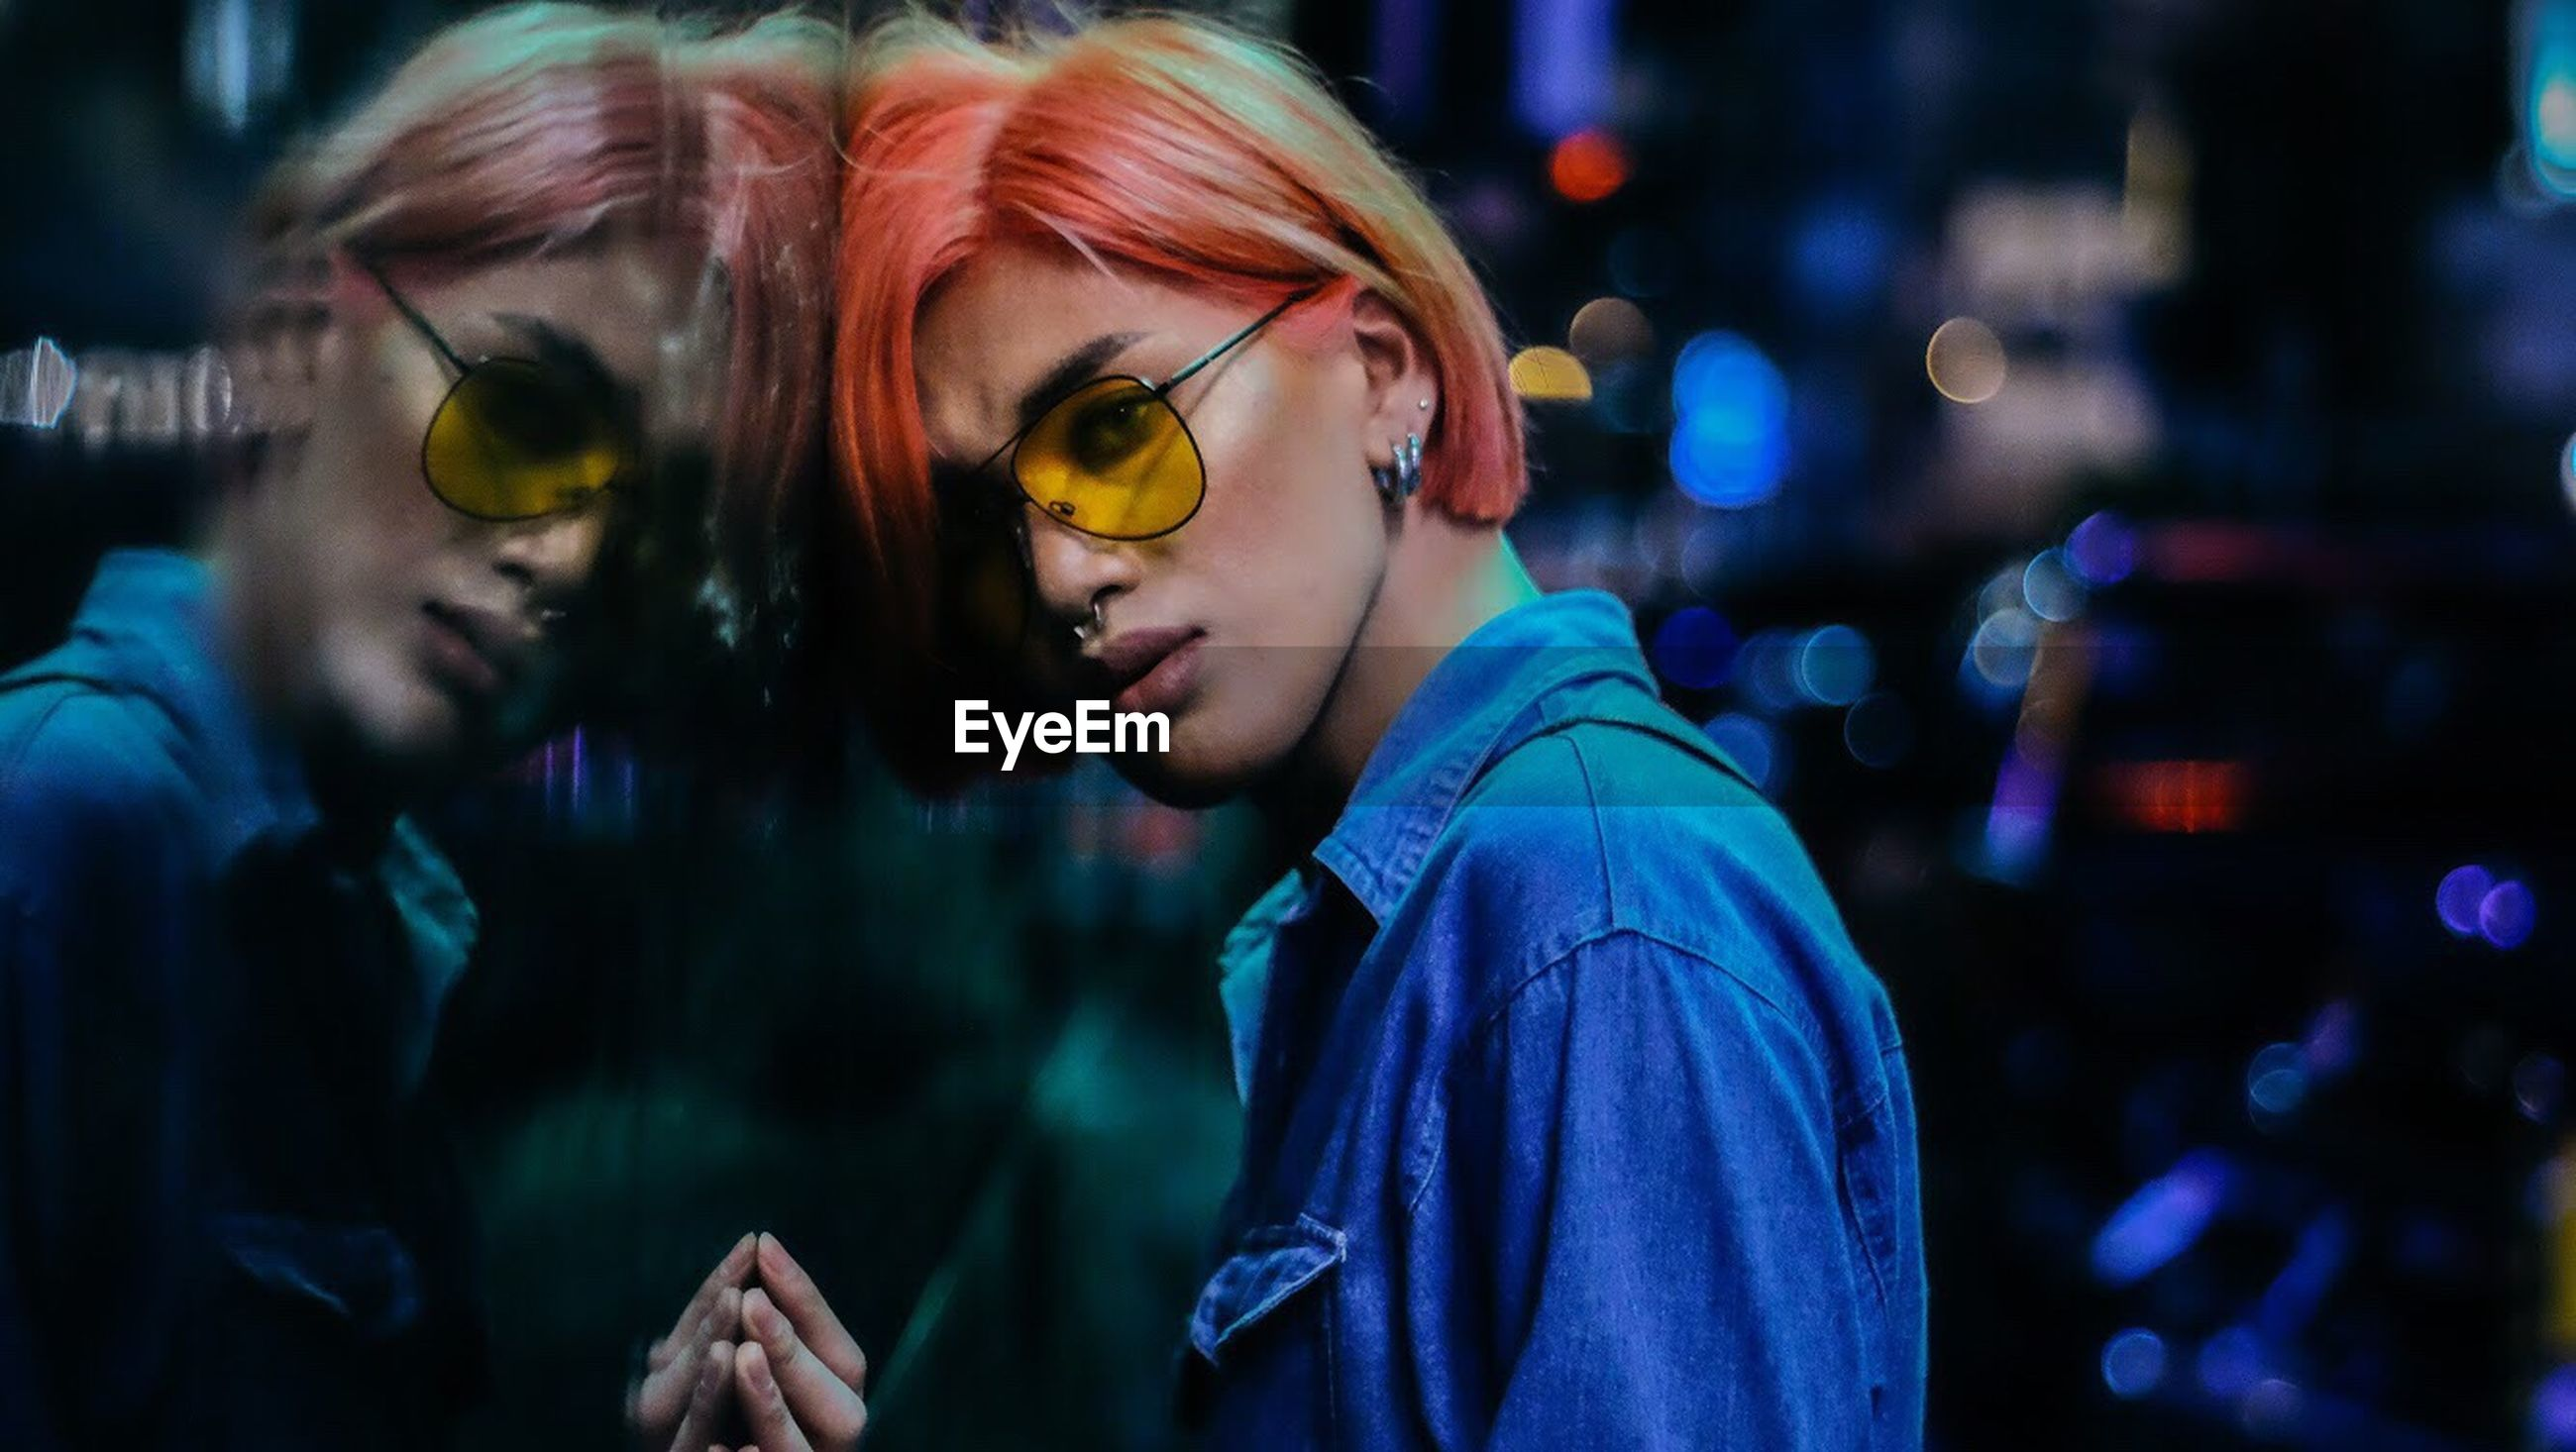 sunglasses, eyeglasses, focus on foreground, togetherness, two people, night, illuminated, outdoors, real people, headshot, standing, young women, young adult, eyewear, nightlife, close-up, friendship, people, adult